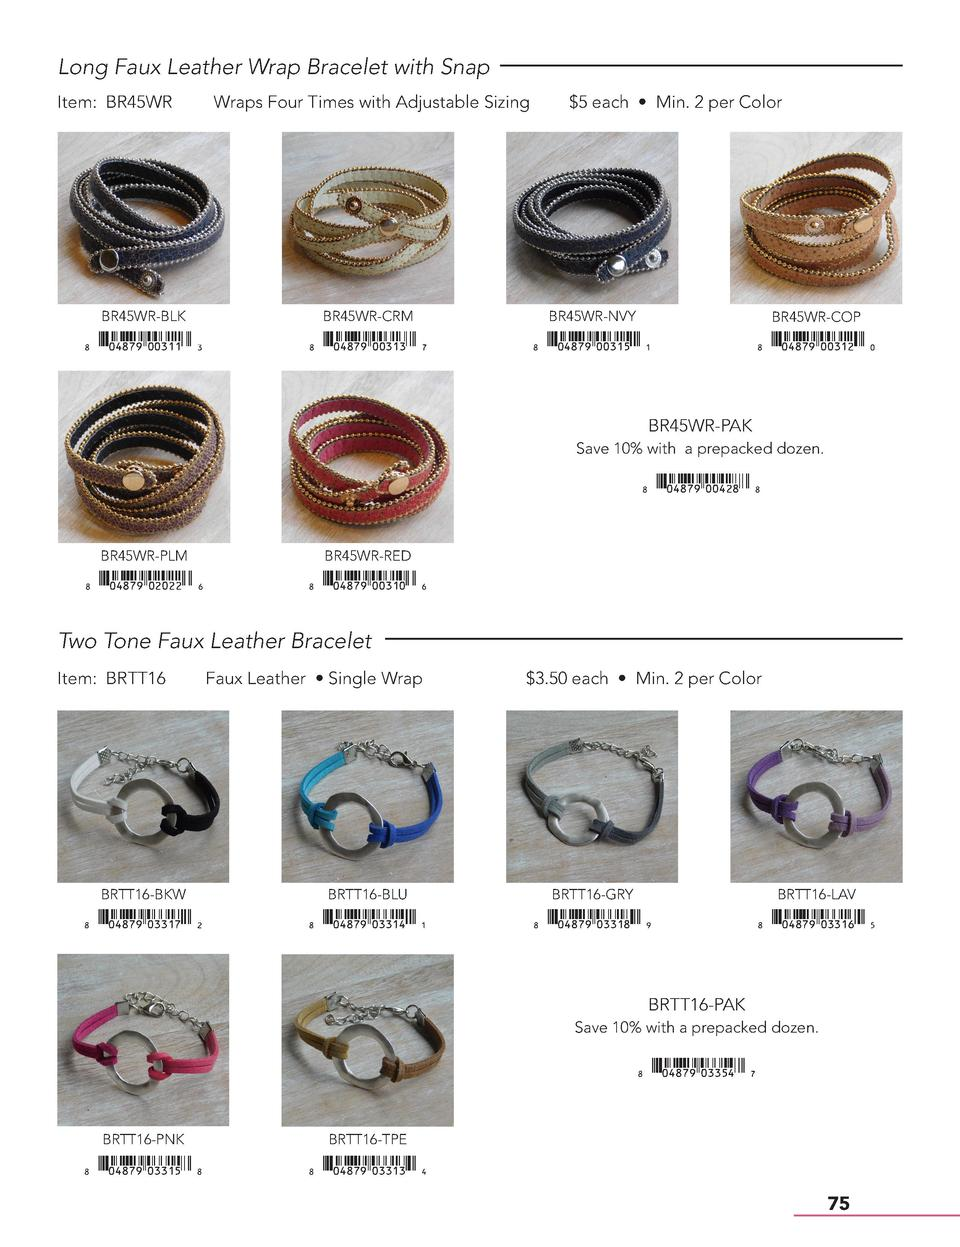 Long Faux Leather Wrap Bracelet with Snap Item  BR45WR  Wraps Four Times with Adjustable Sizing   5 each     Min. 2 per Co...